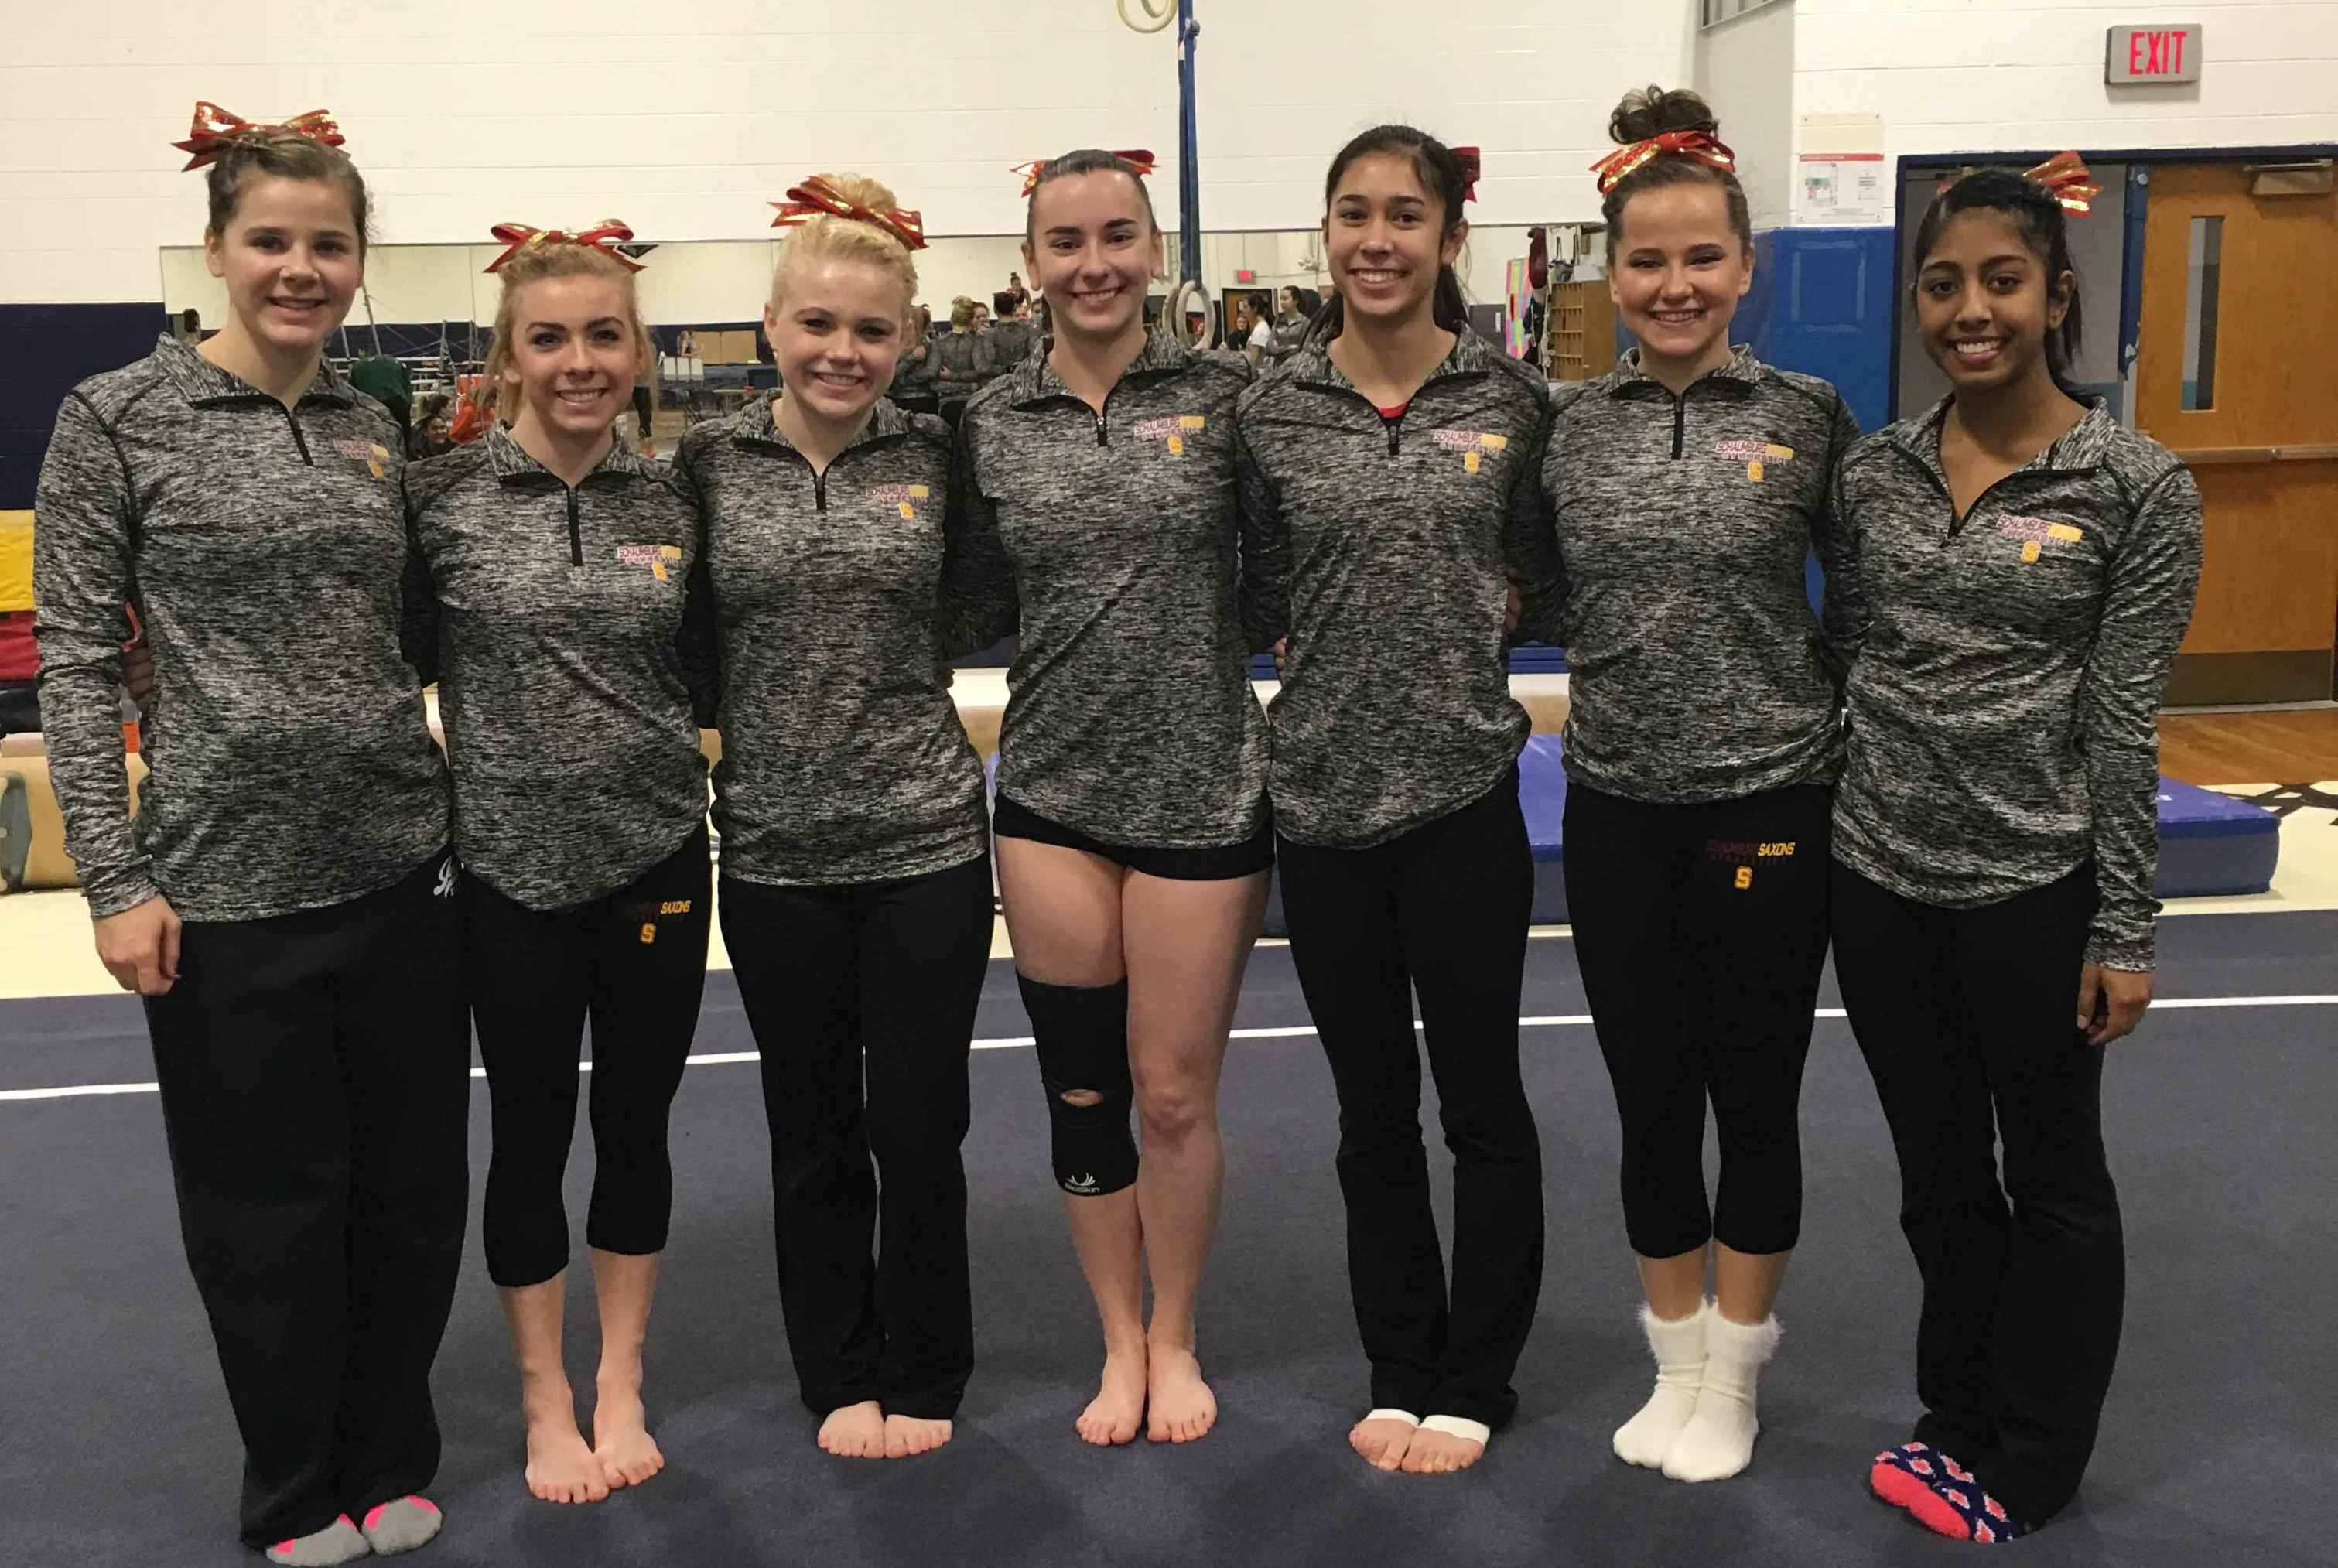 The girls pose for a team photo before the Prospect Invite on January 16, 2016